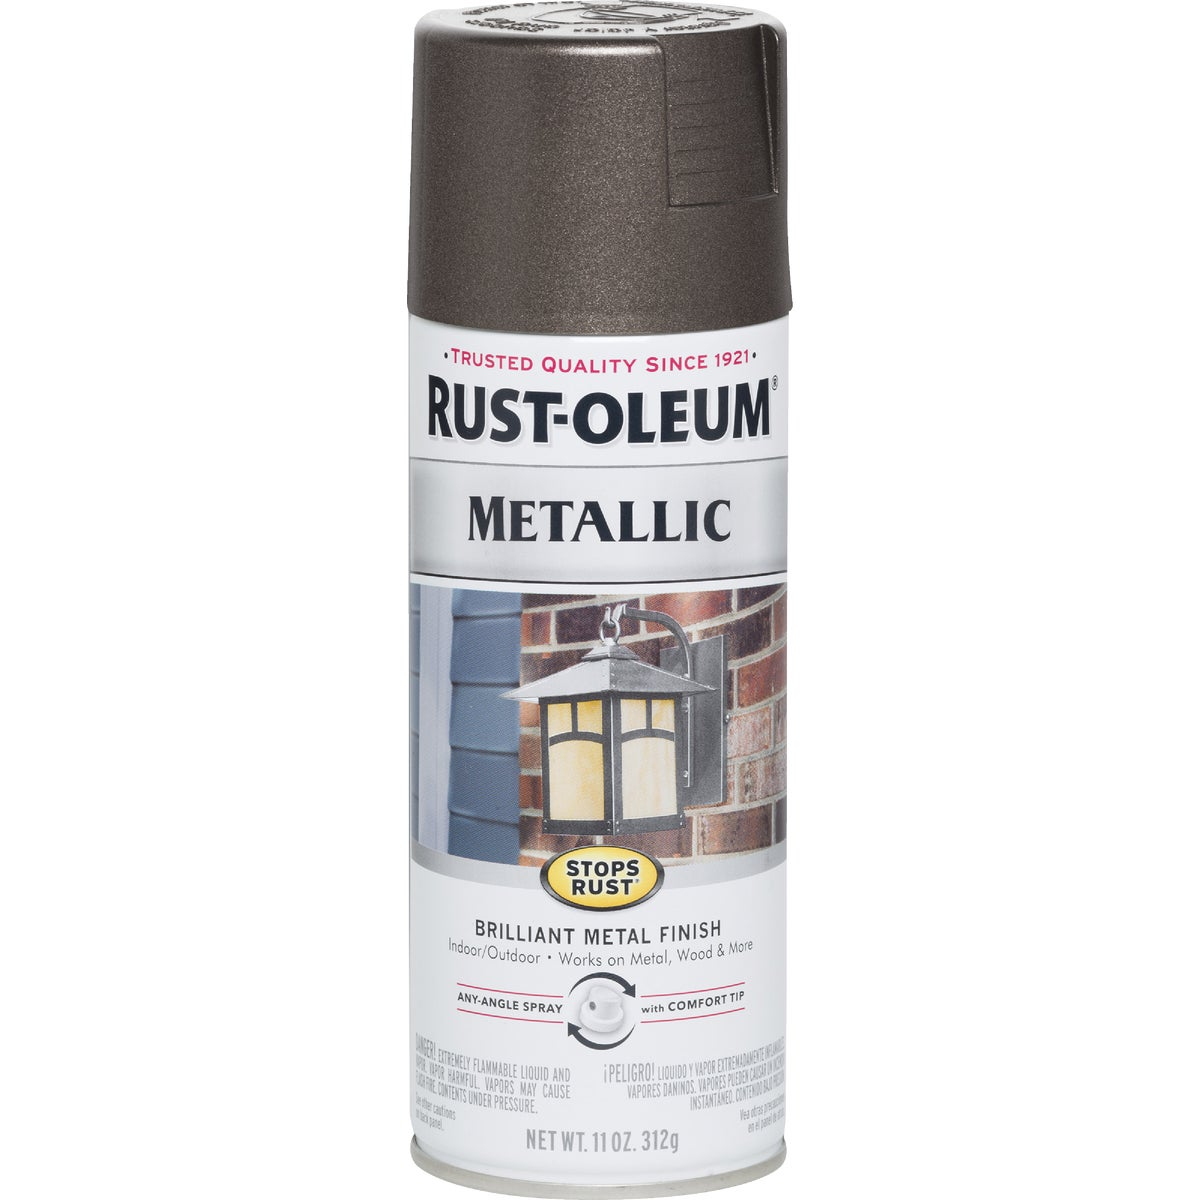 DK BRNZ MTLC SPRAY PAINT - 7272-830 by Rustoleum